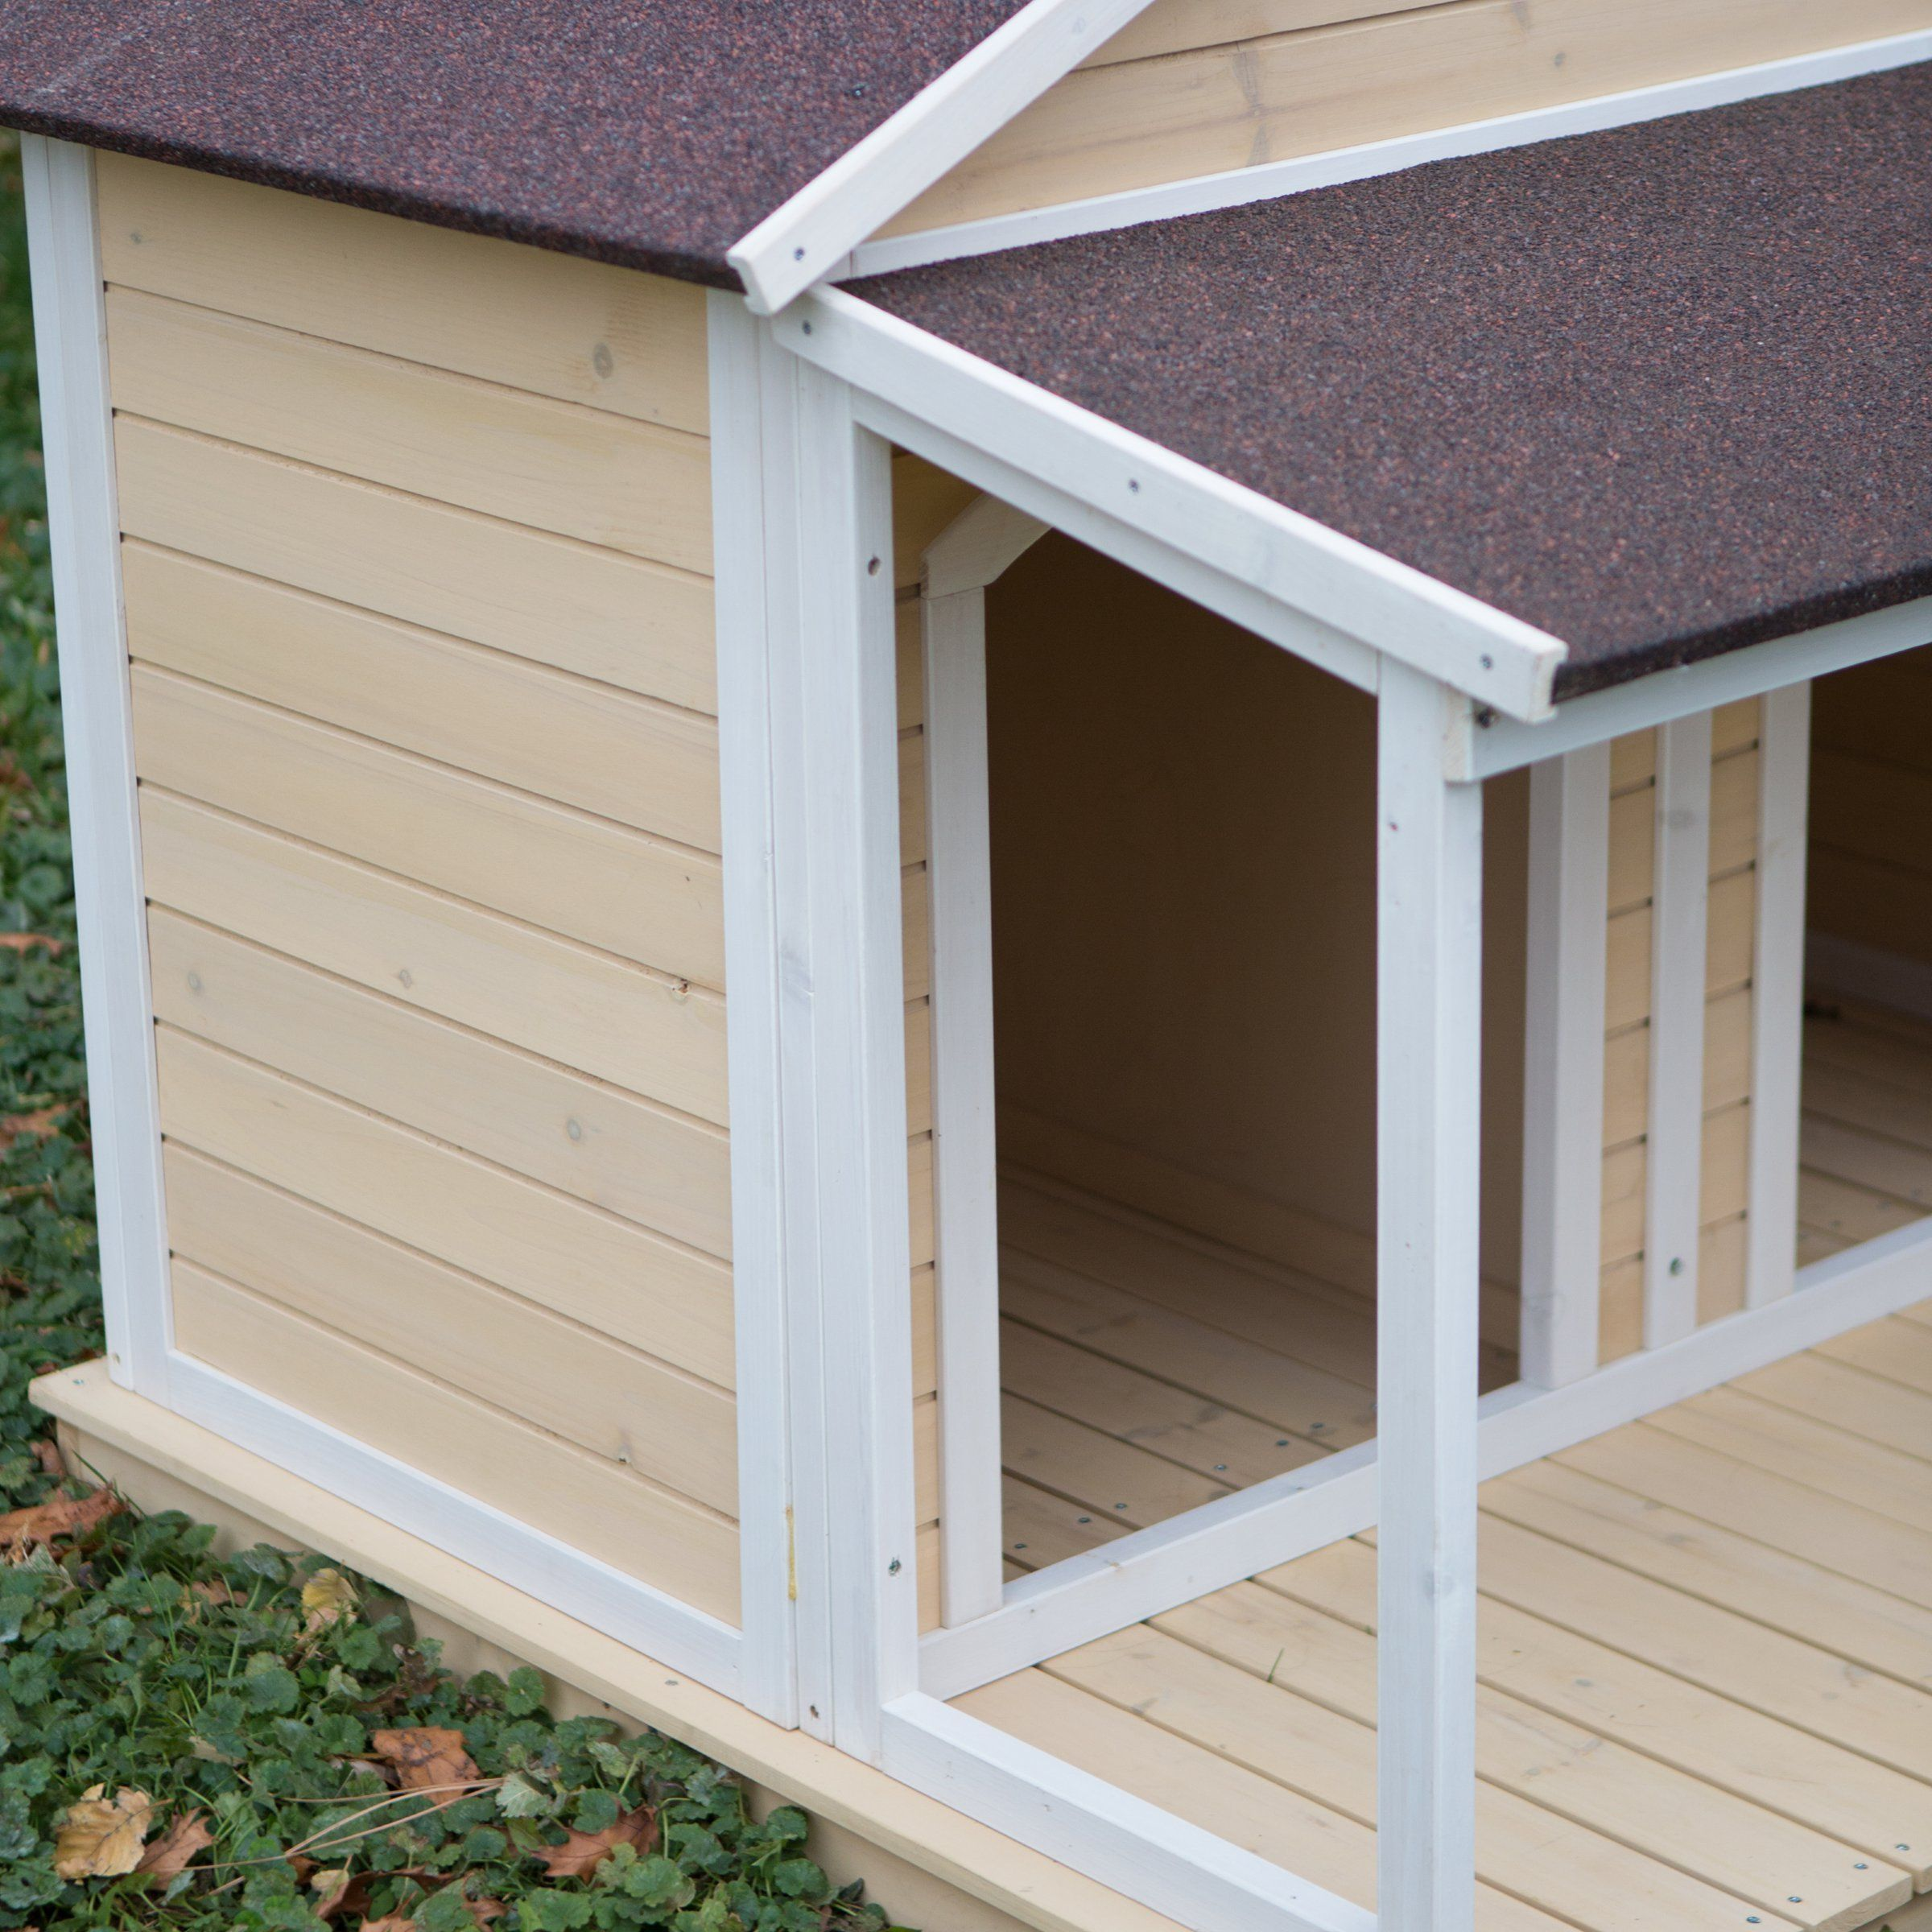 Antique Large Dog House W Roof Solid Wood Penthouse Kennels Crates Duplex 51x43x43 W Balcony Dogbedideas Dog Houses Outdoor Dog Bed Large Dog House